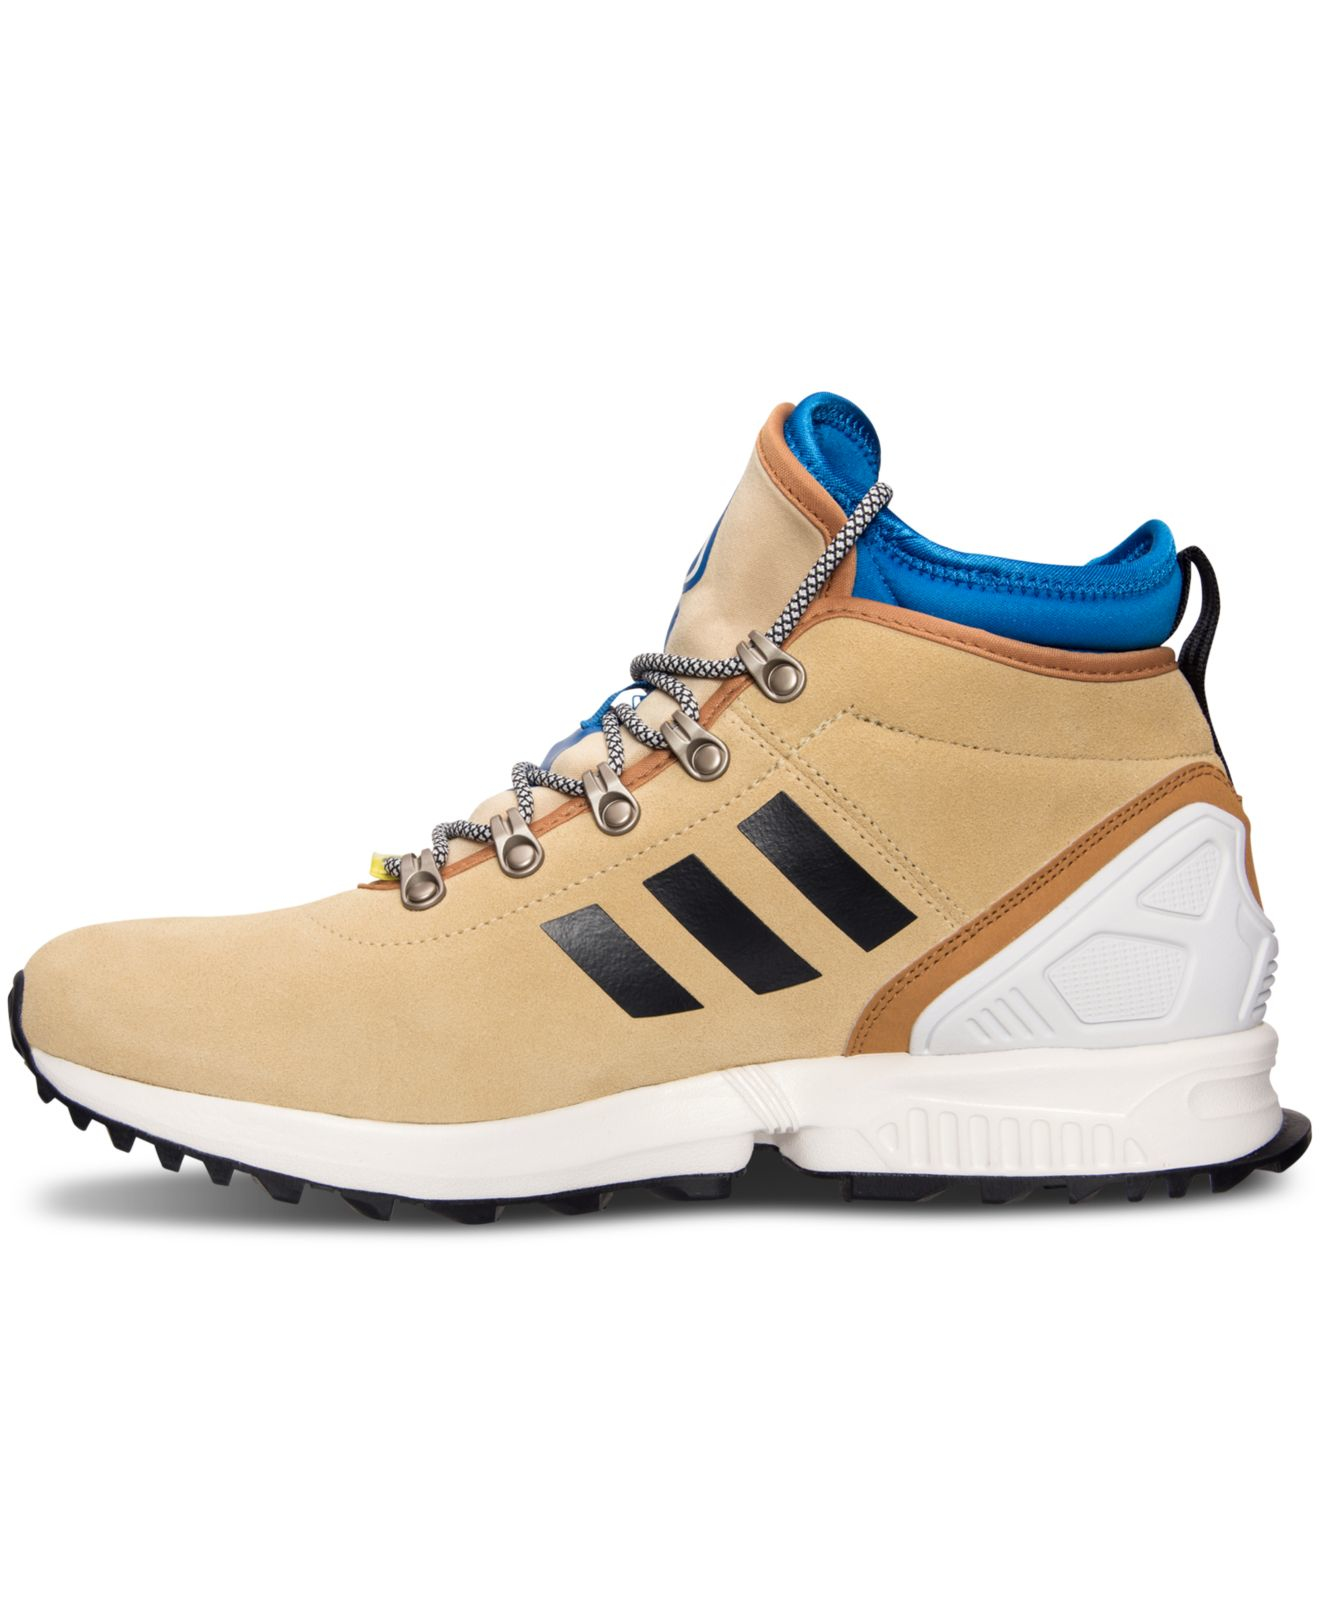 5ce4e9d8c ... casual sneakers from finish line 82330 59f09  inexpensive lyst adidas  mens originals zx flux winter sneakerboots from 7d3bf a33b0